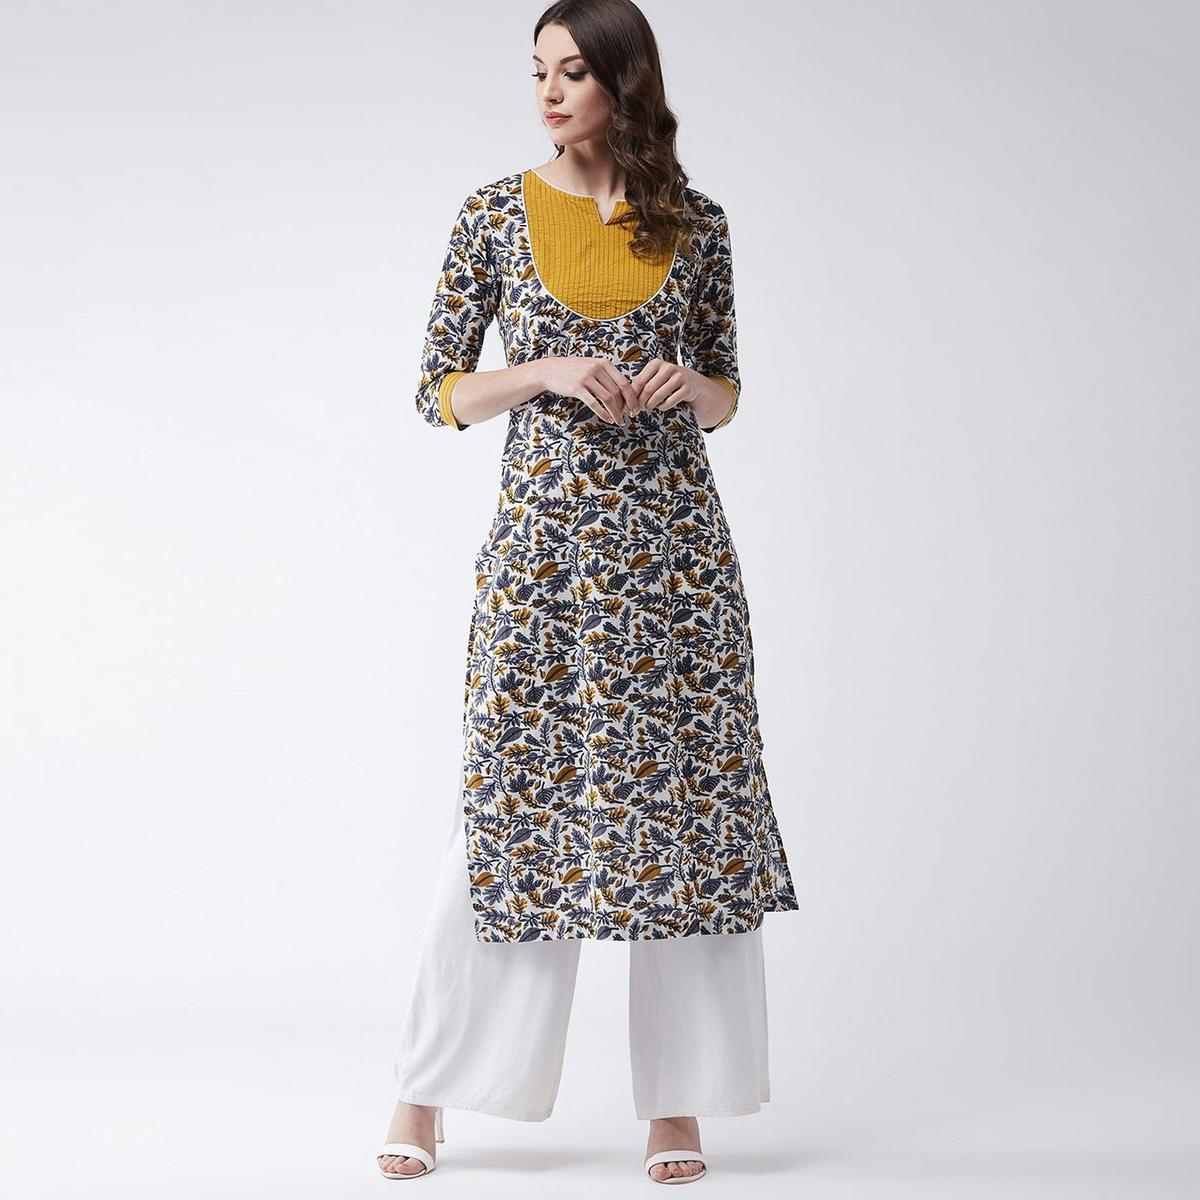 Pannkh - Women's Multicolor Colored Printed Cotton Kurti With Solid Yoke